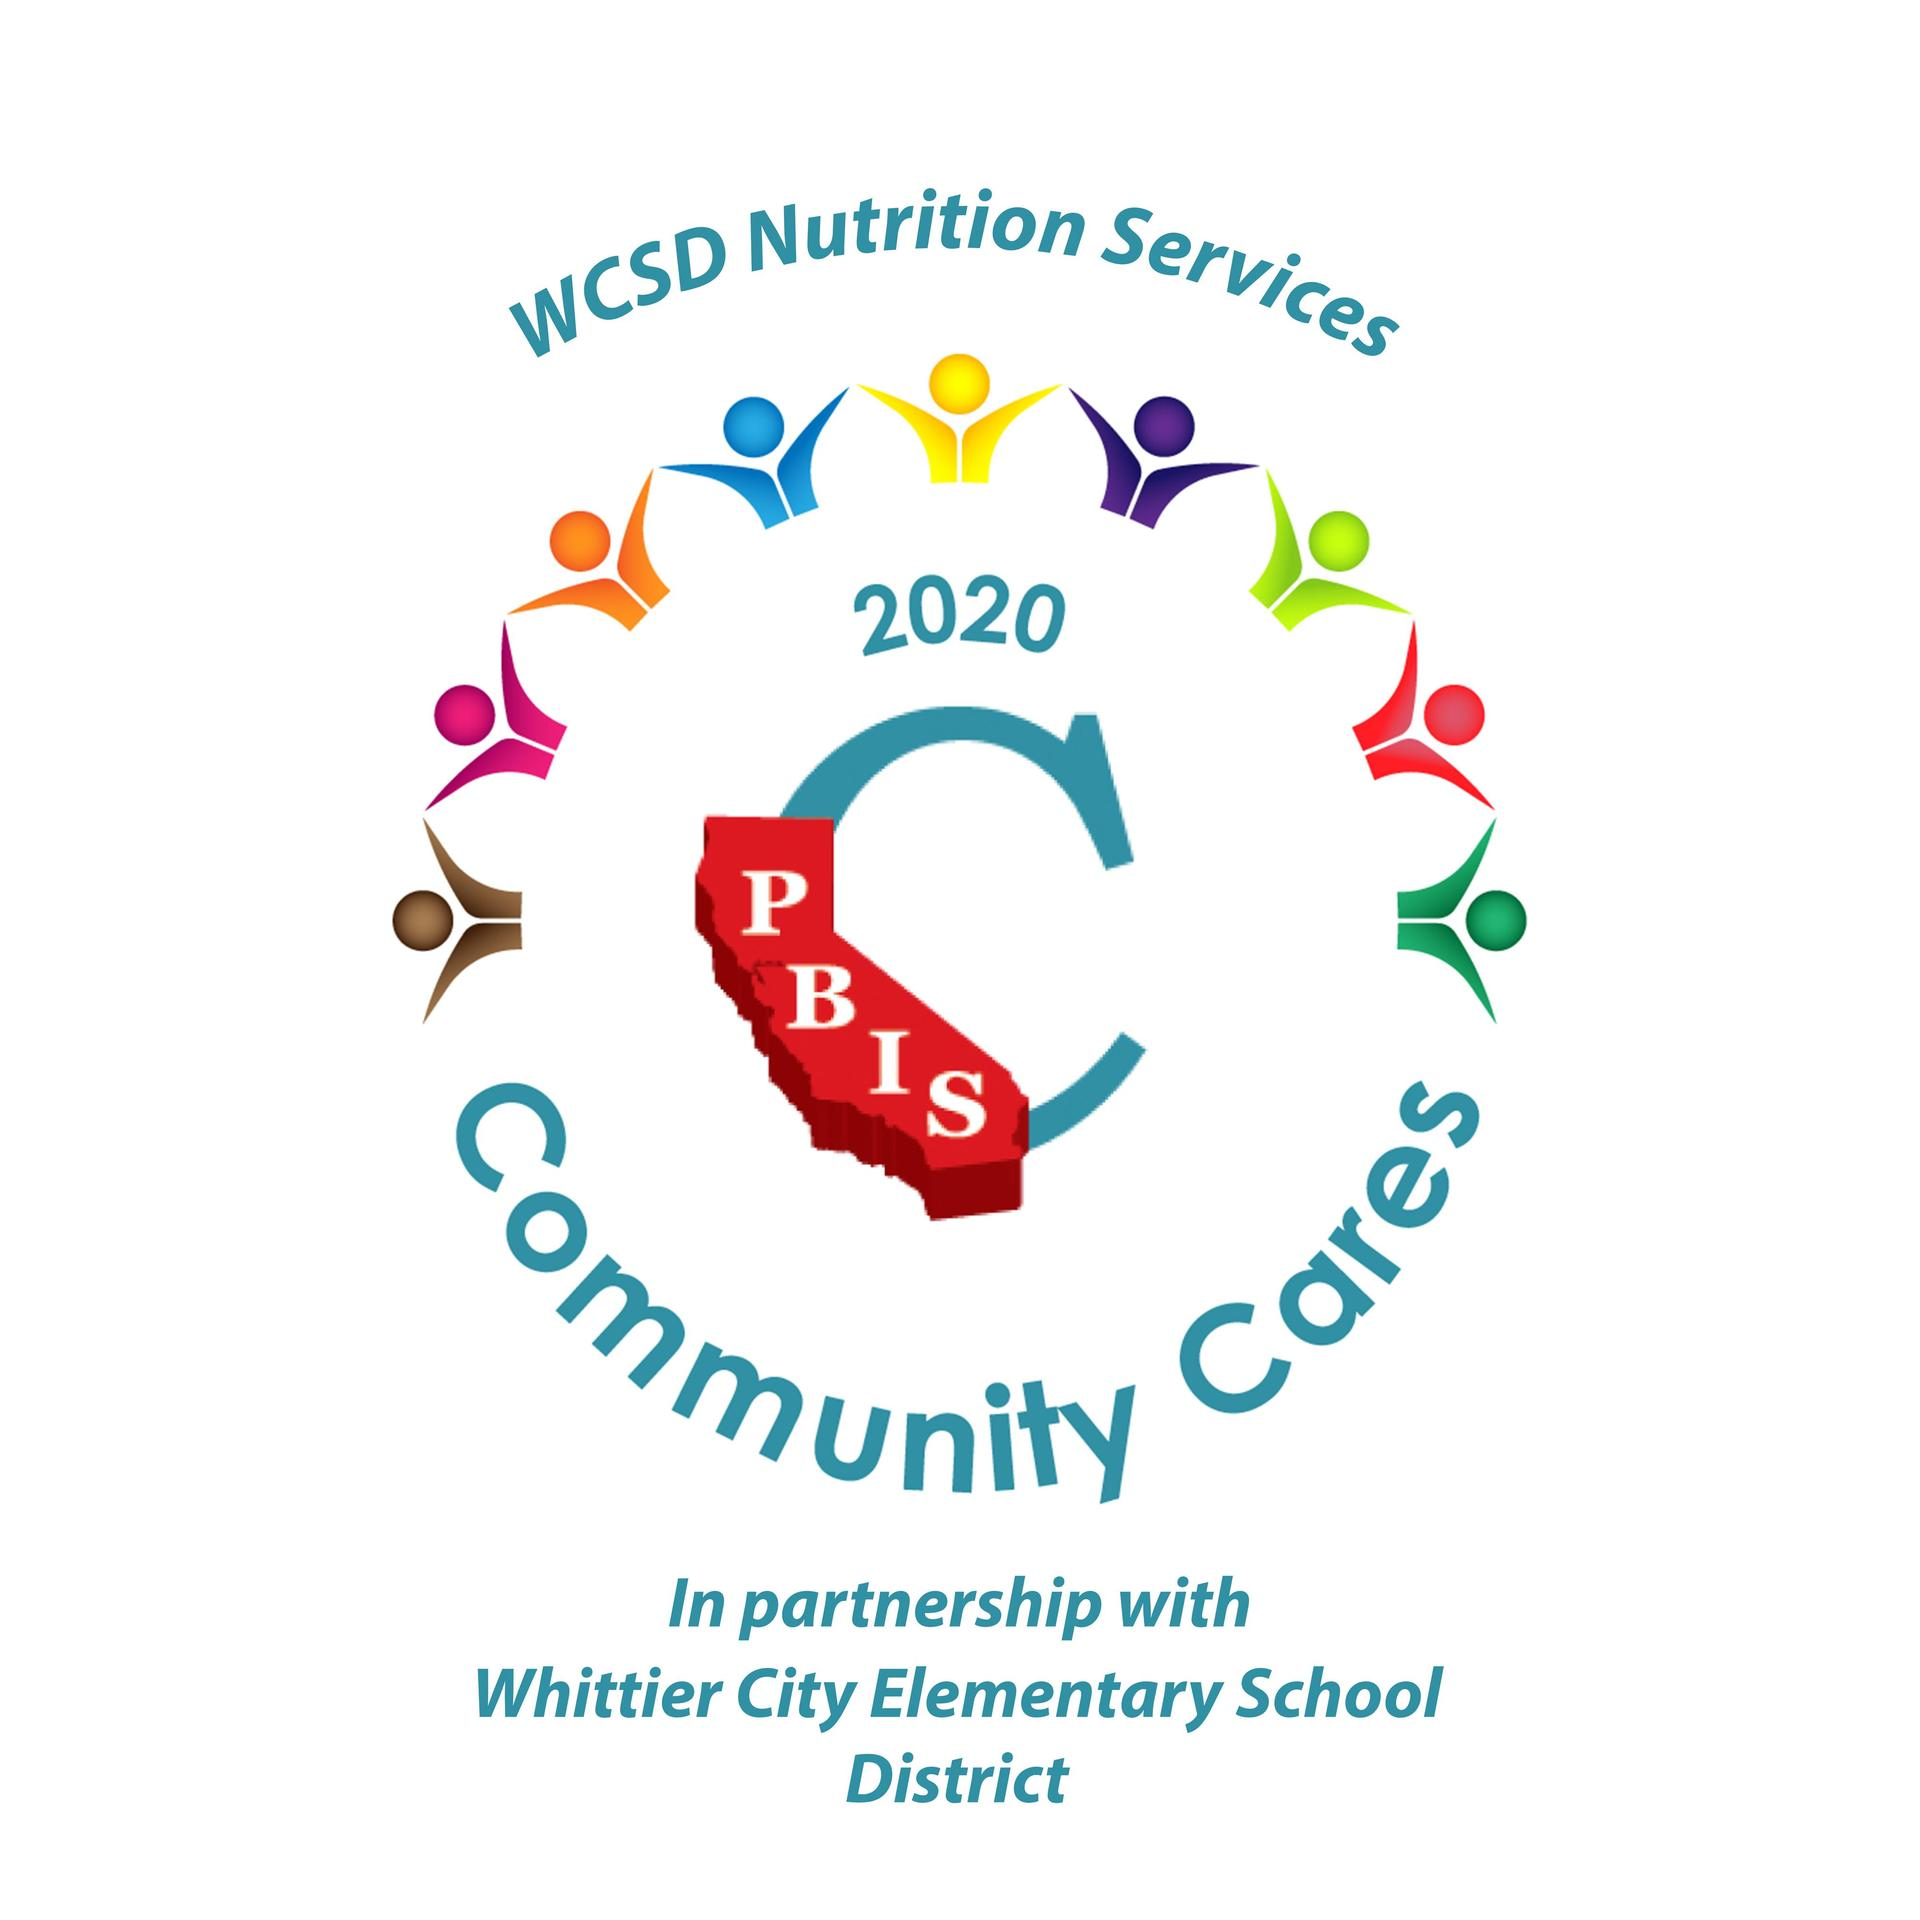 Whittier City SD Nutrition Services